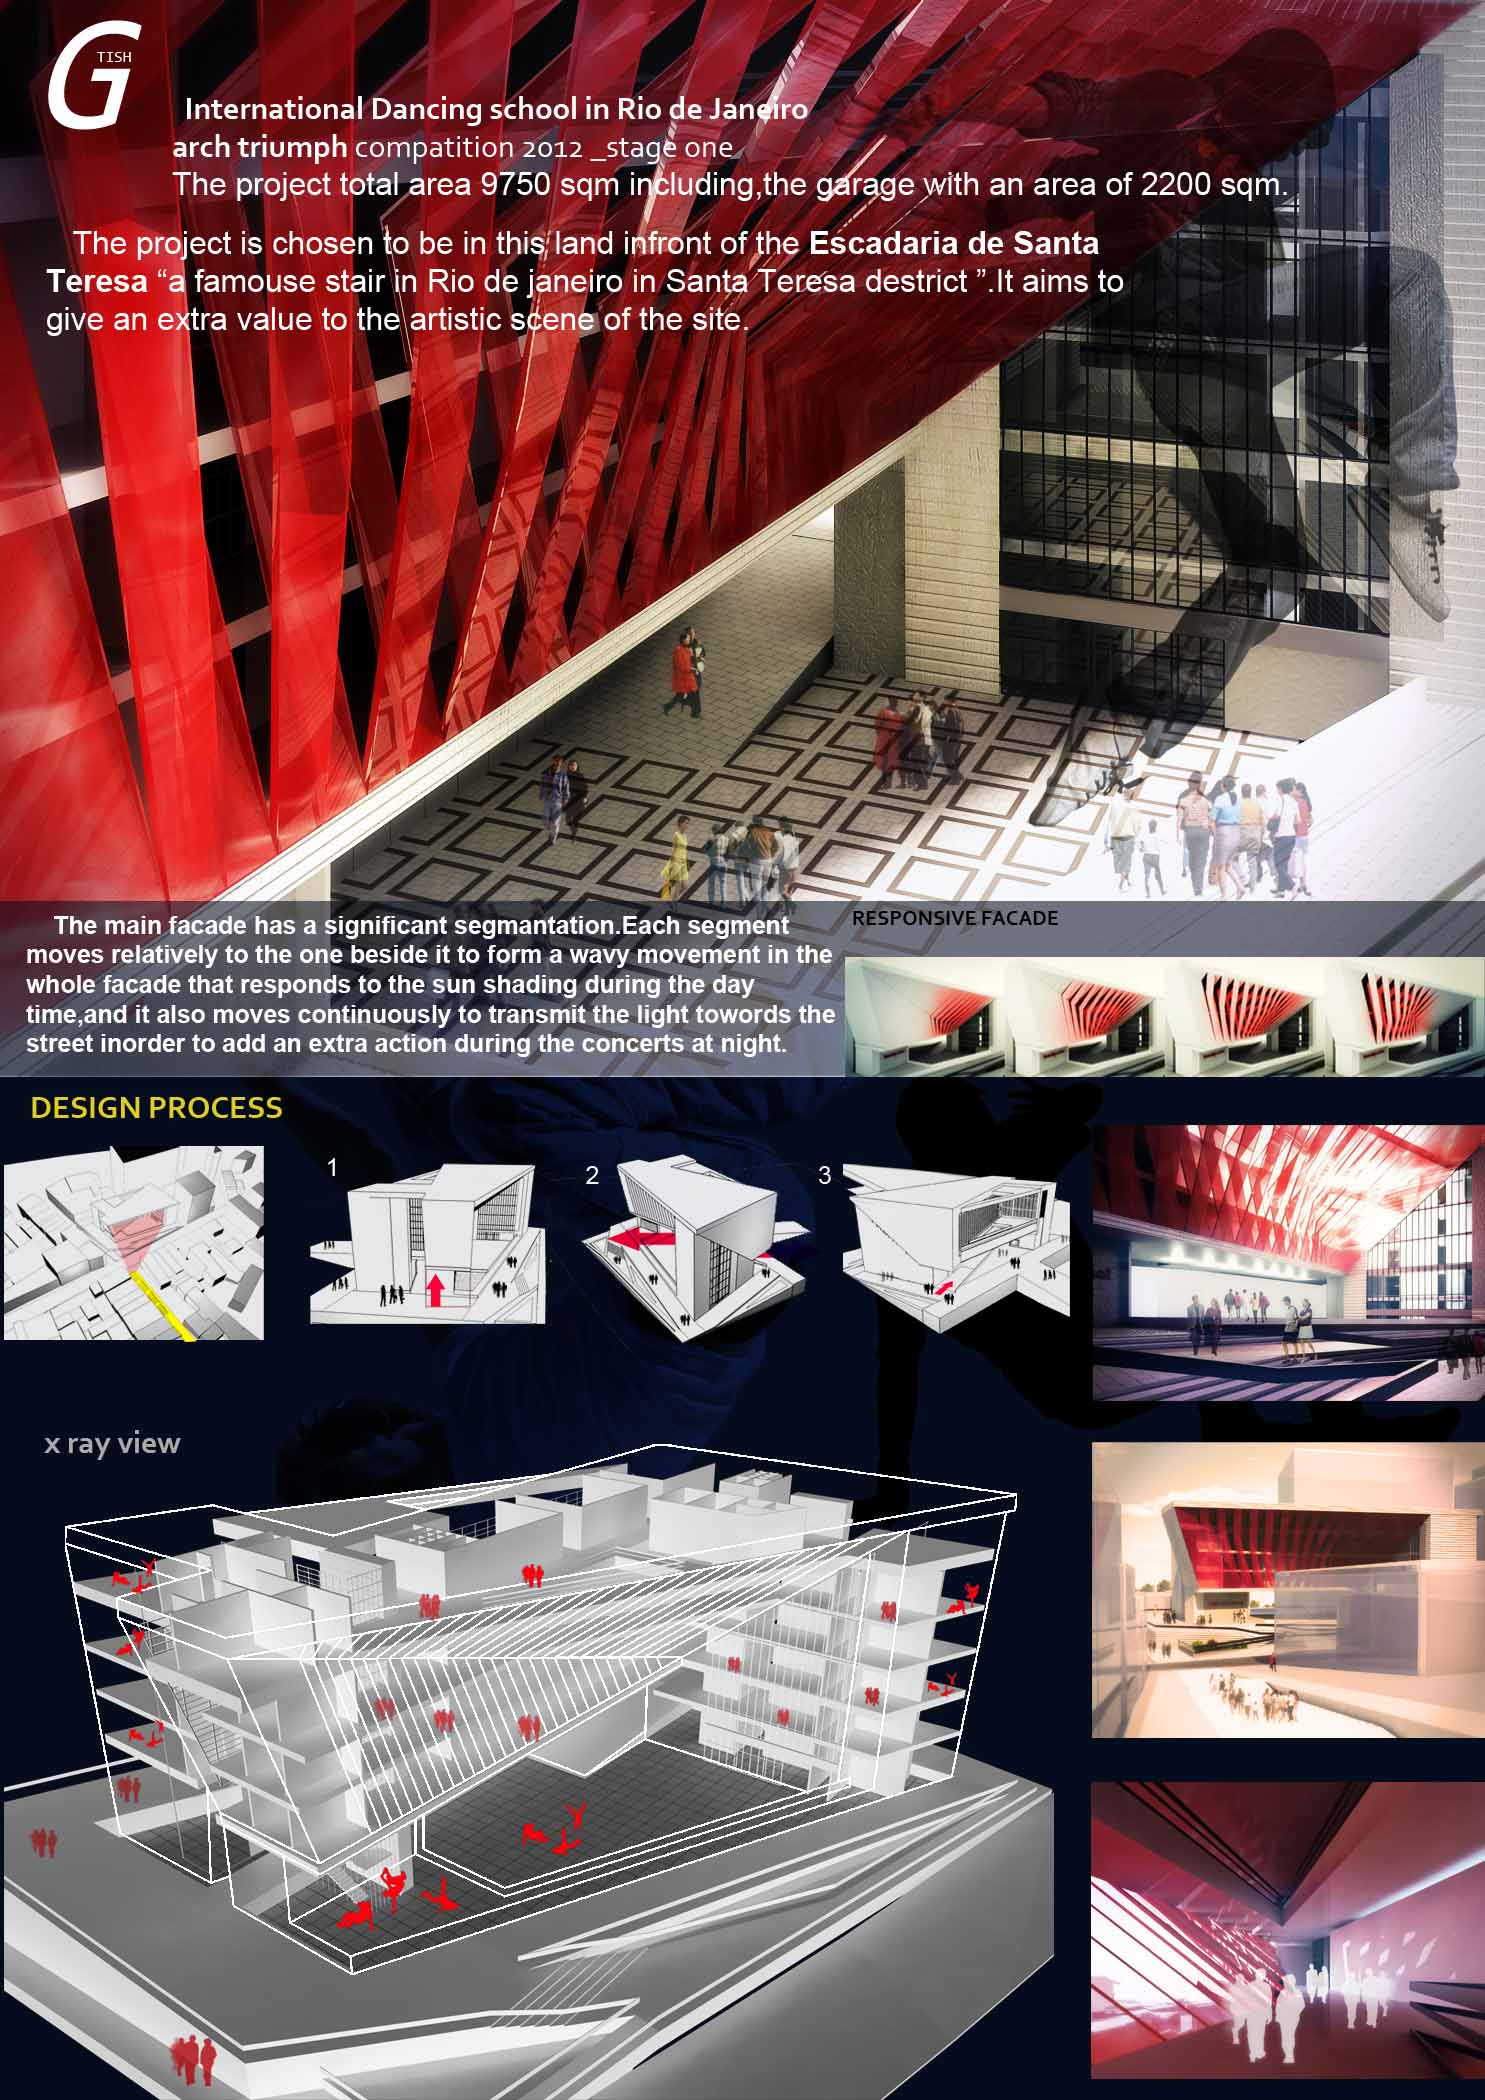 International Dancing School in Rio de Janeiro modern arch triumph competition interior concept